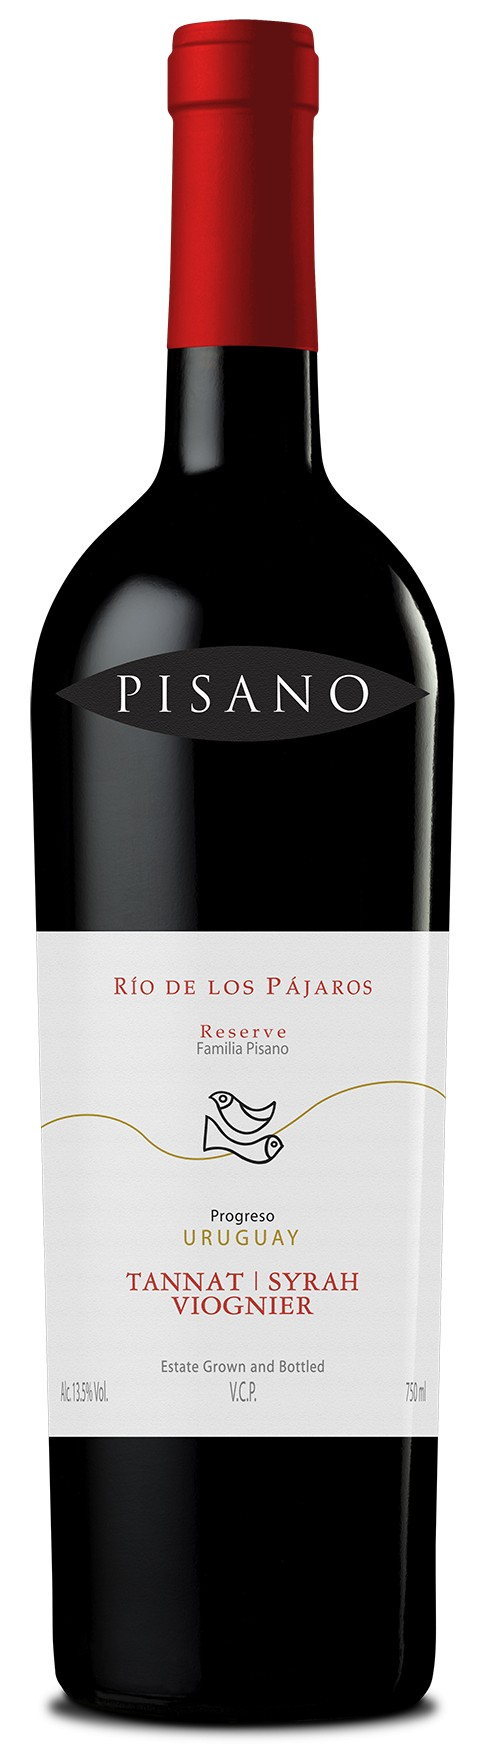 Buy Pisano Rio De Los Pajaros Tannat Syrah Viognier 2013 at herculeswines.co.uk